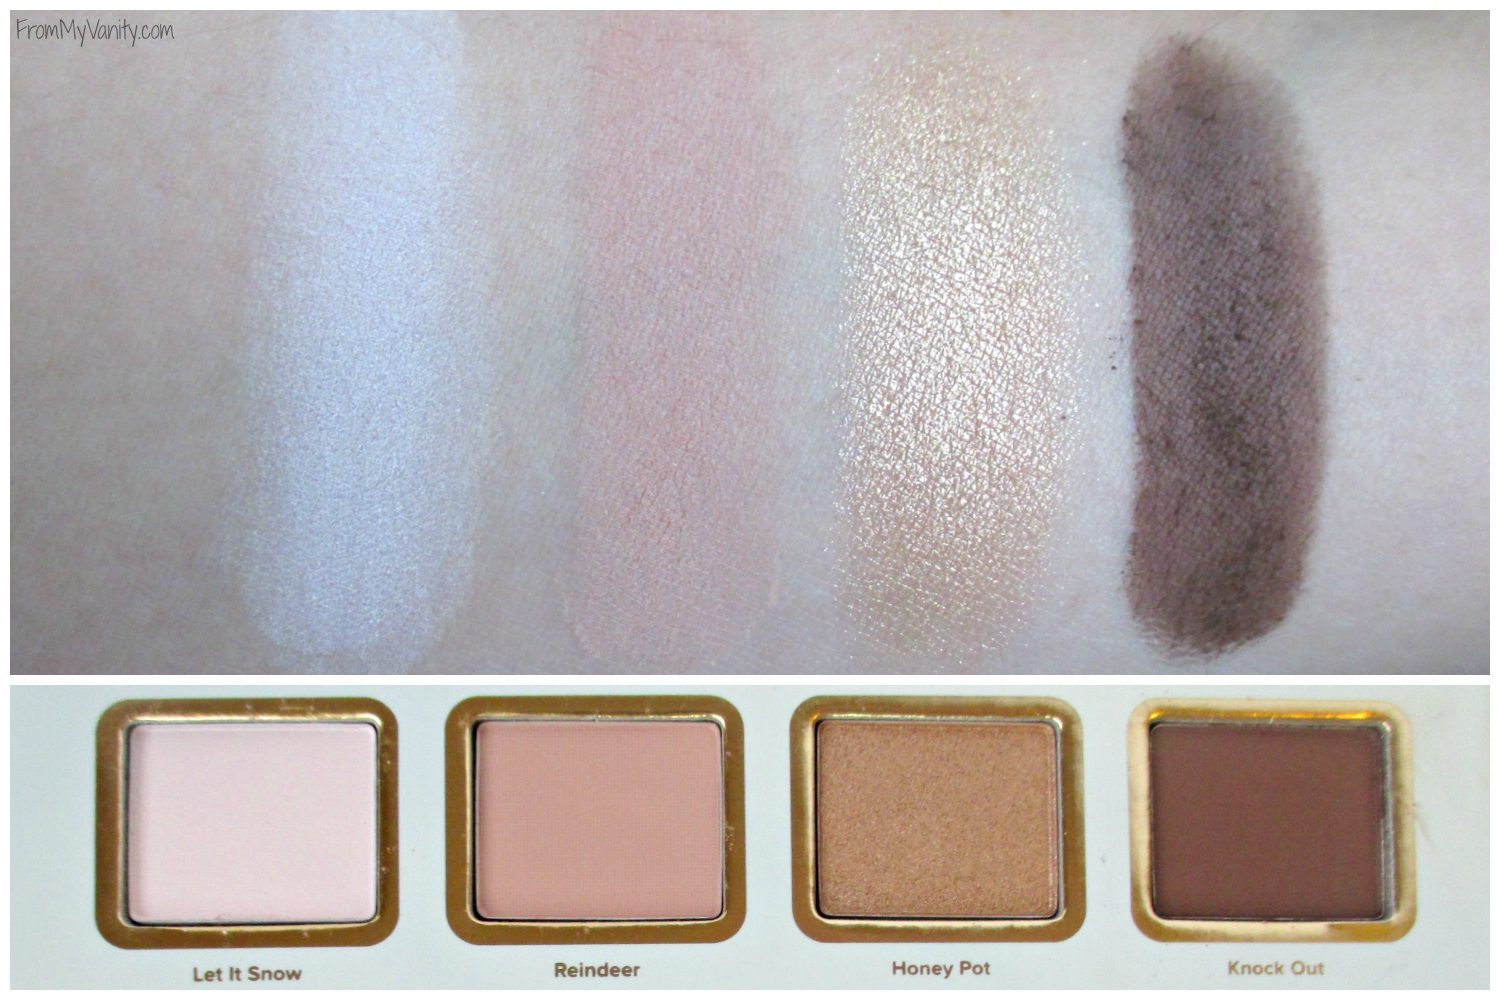 Too Faced La Petite Maison // Holiday Set // Review & Swatches // Swatches of First Row // #UltaBeauty #TooFaced FromMyVanity.com